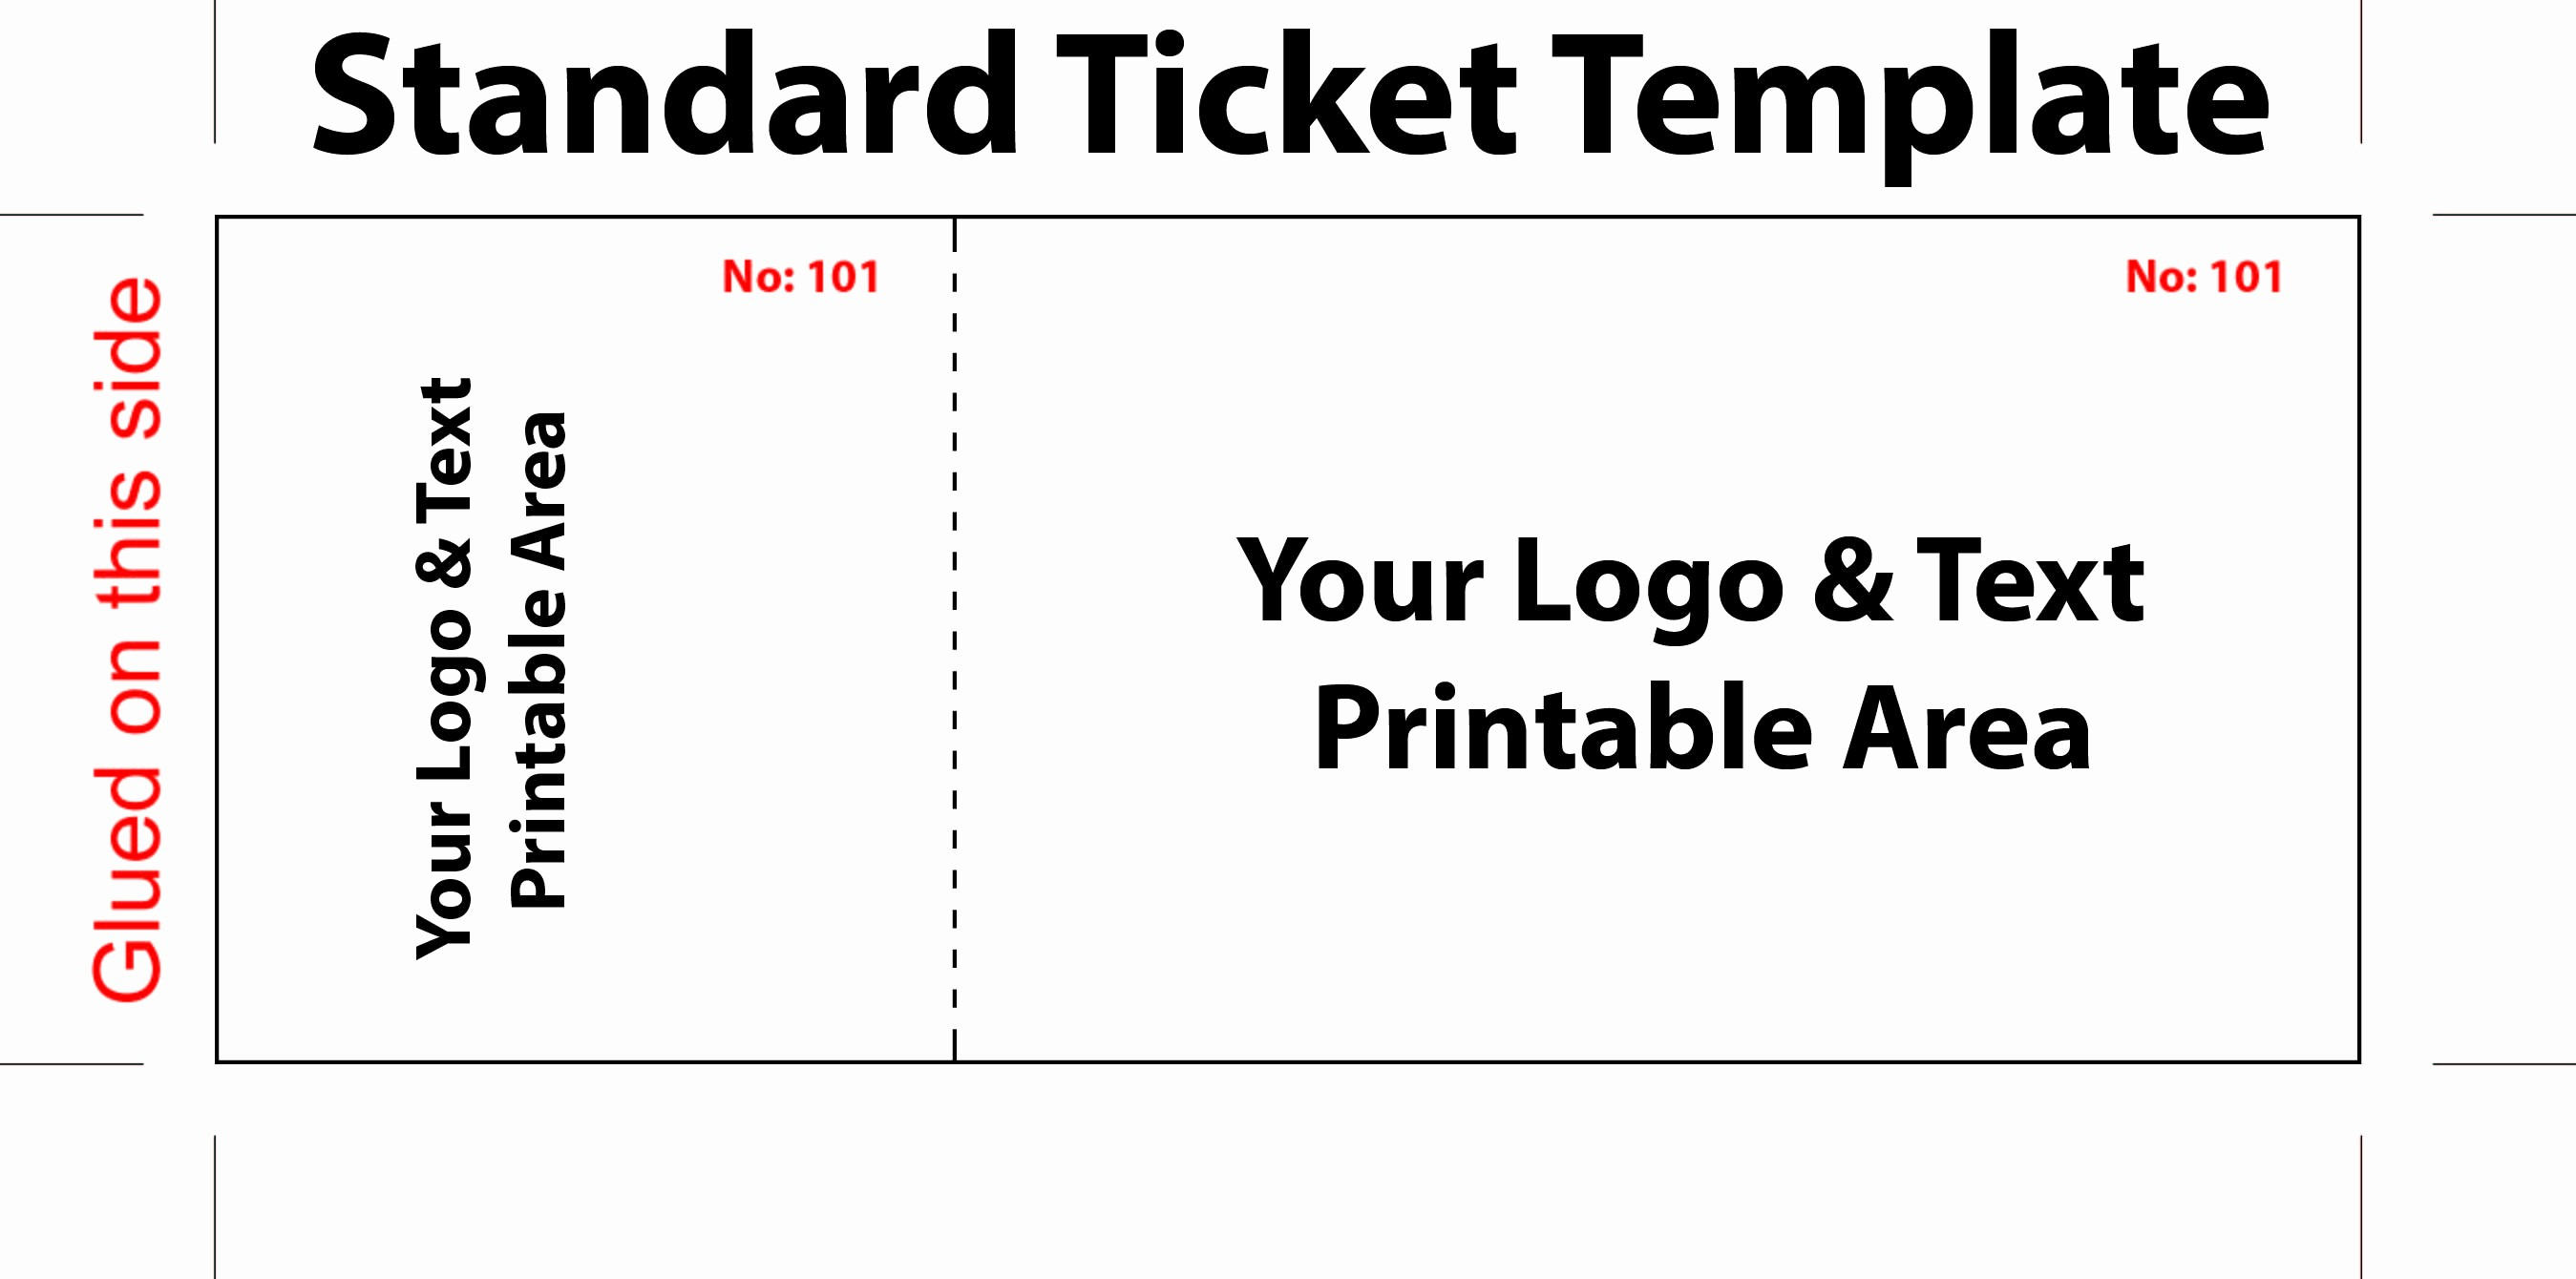 Make Your Own Ticket Template Fresh Free Editable Standard Ticket Template Example for Concert